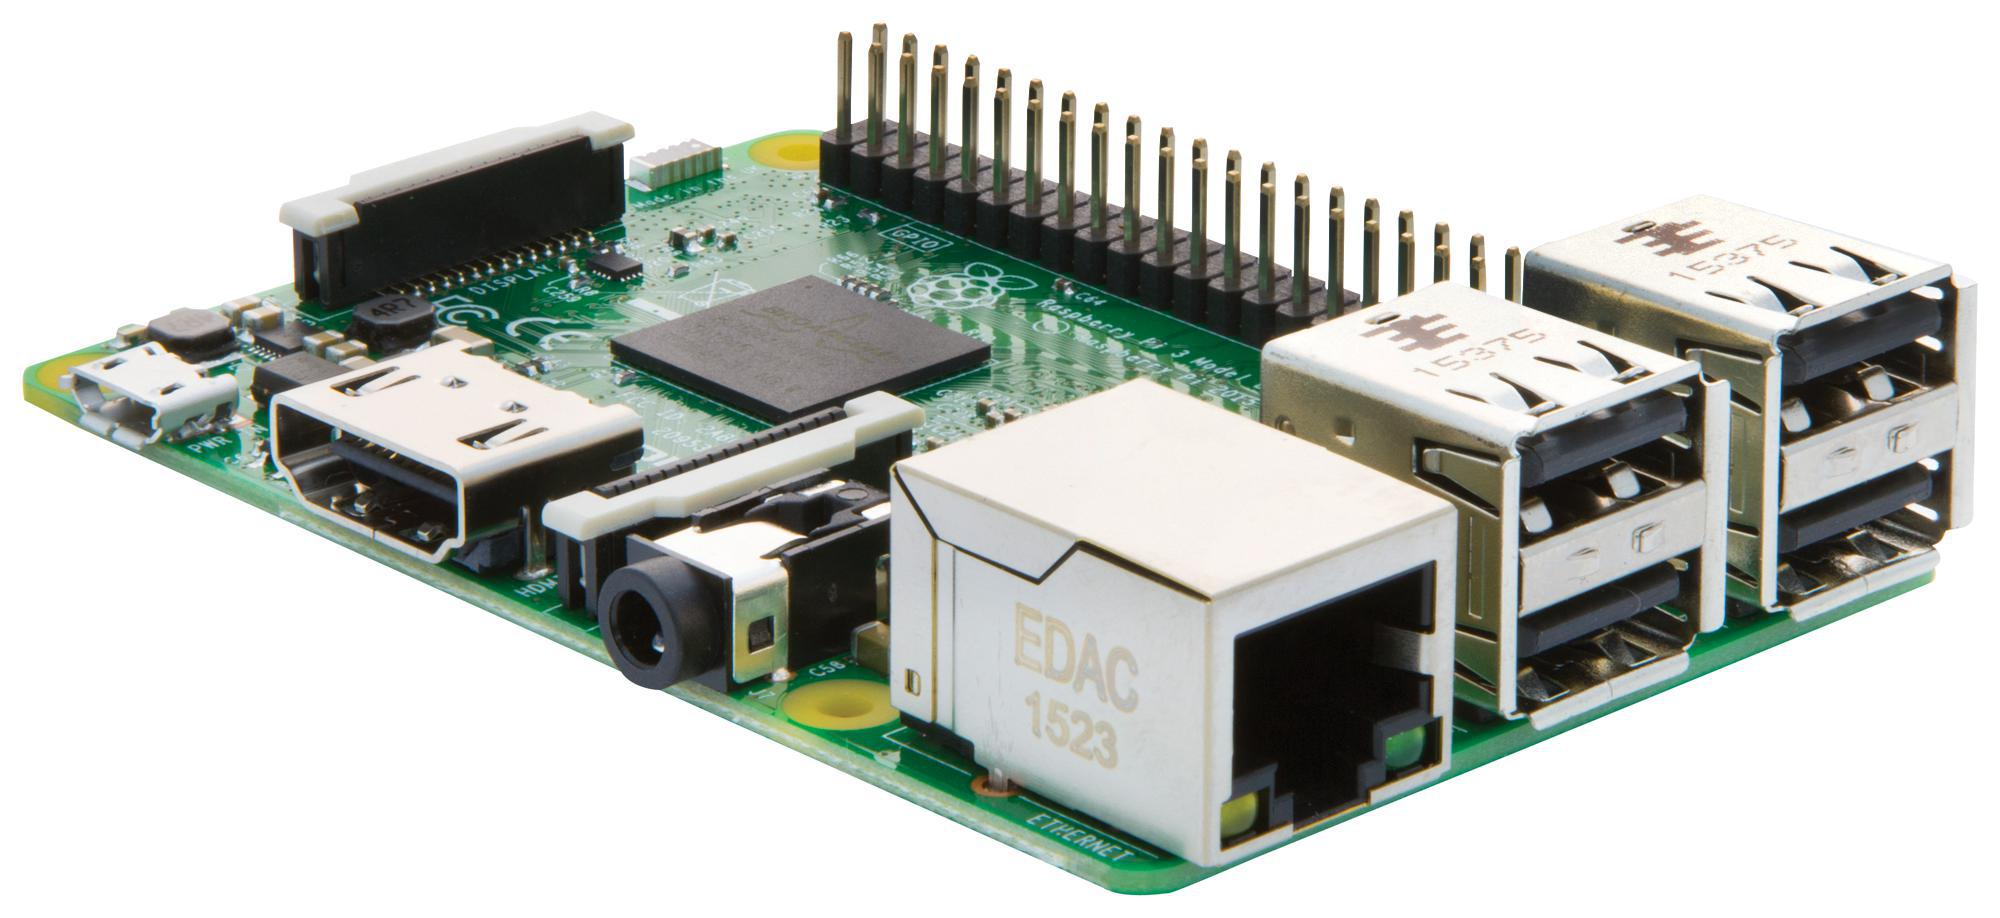 Ucreate raspberry pi 3 kit raspberry pi 3 16gb microsd for Raspberry pi 3 architecture